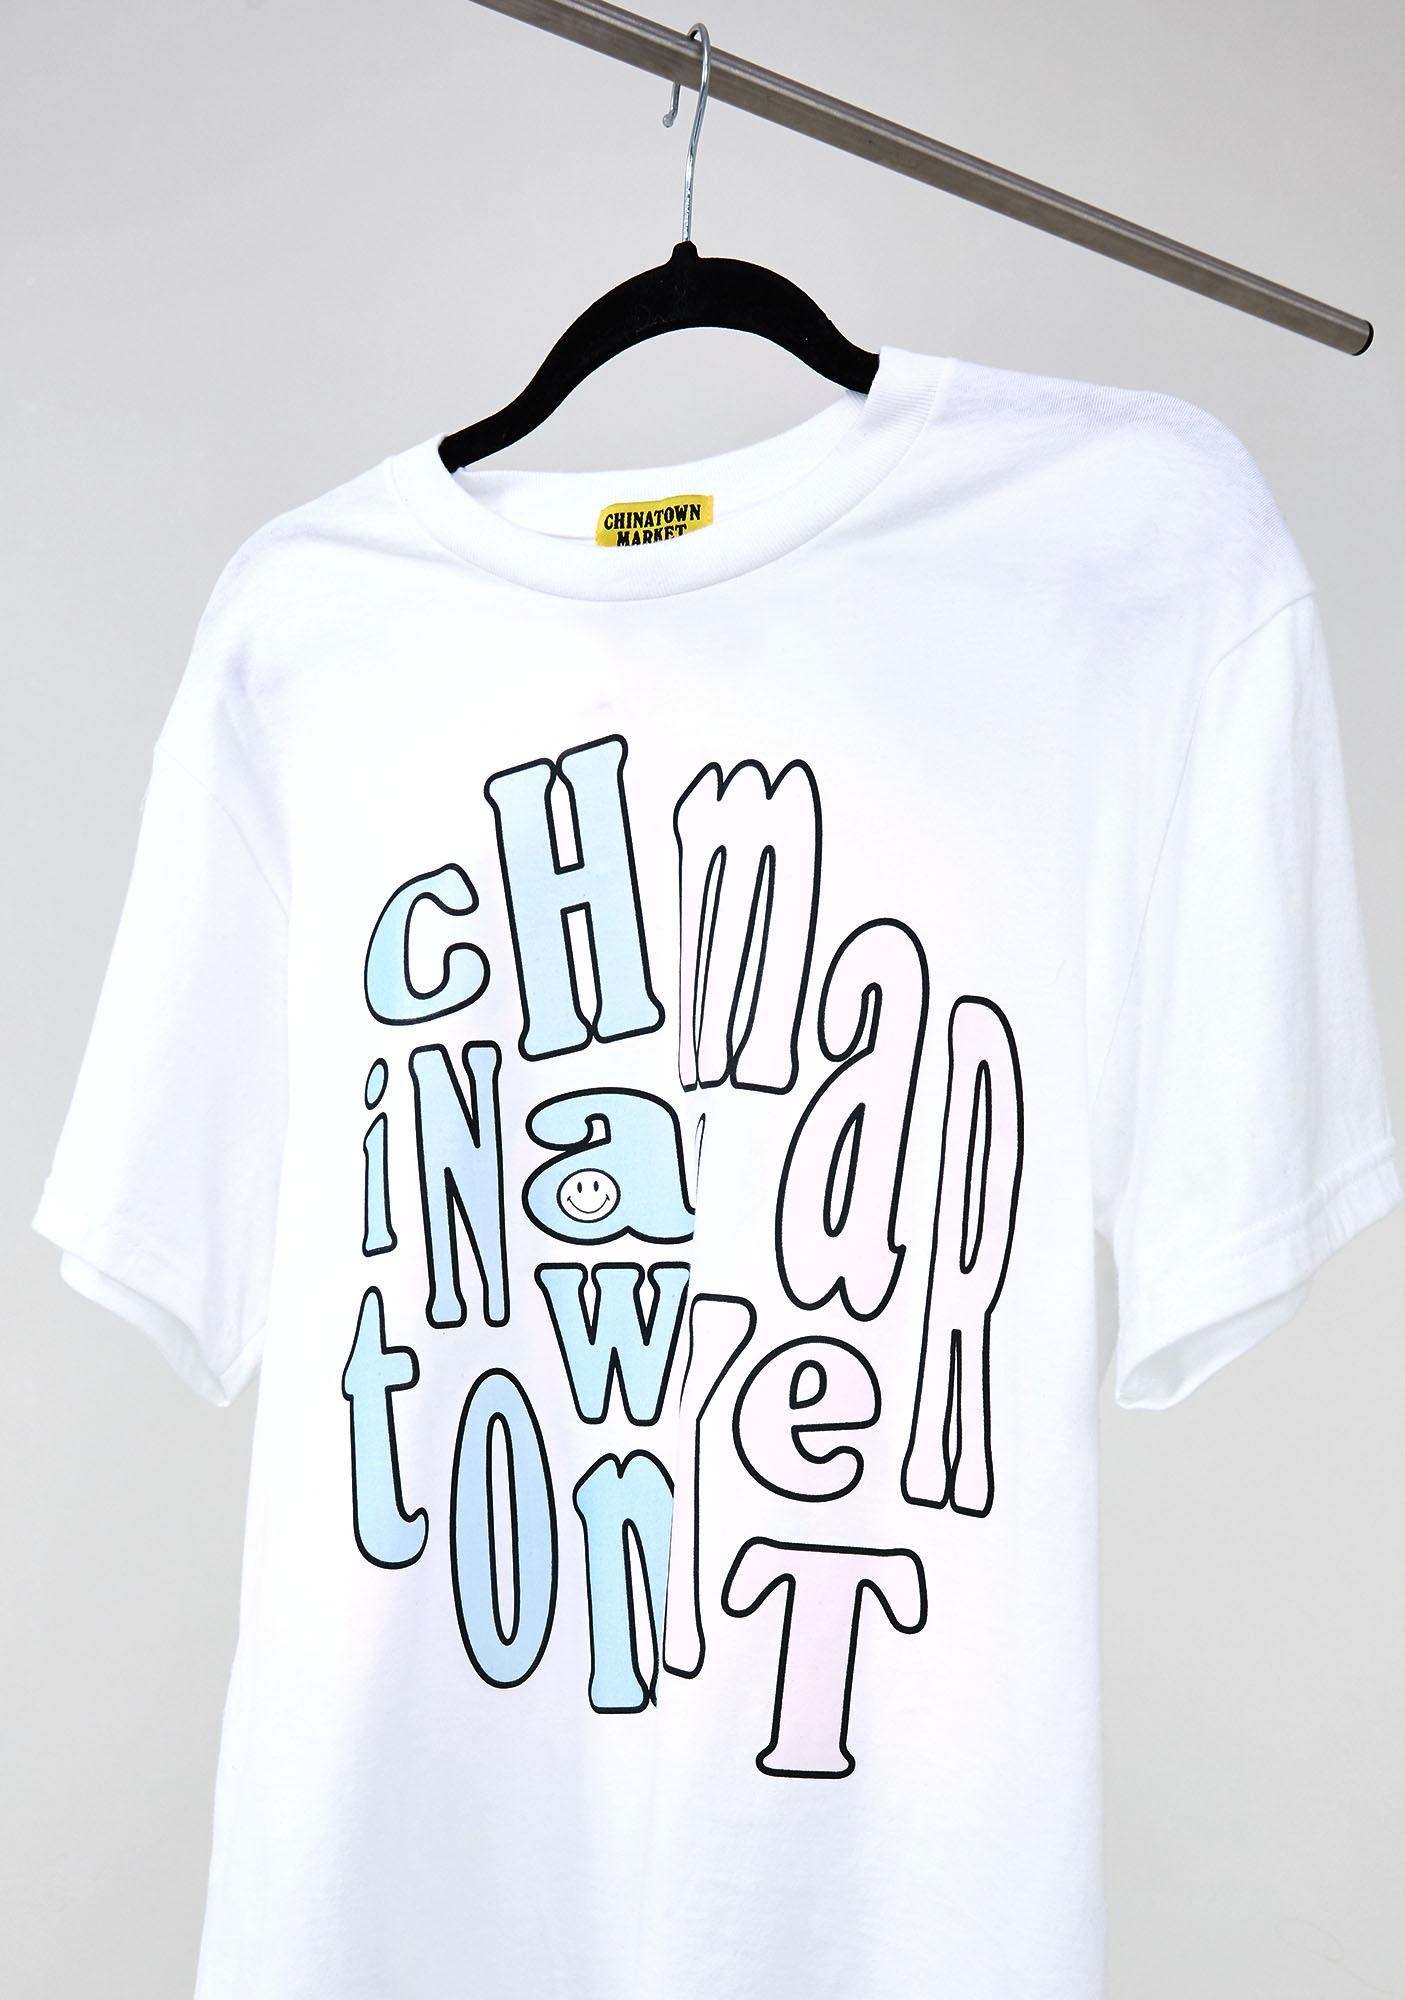 CHINATOWN MARKET UV Activated Smiley Groovy T-Shirt